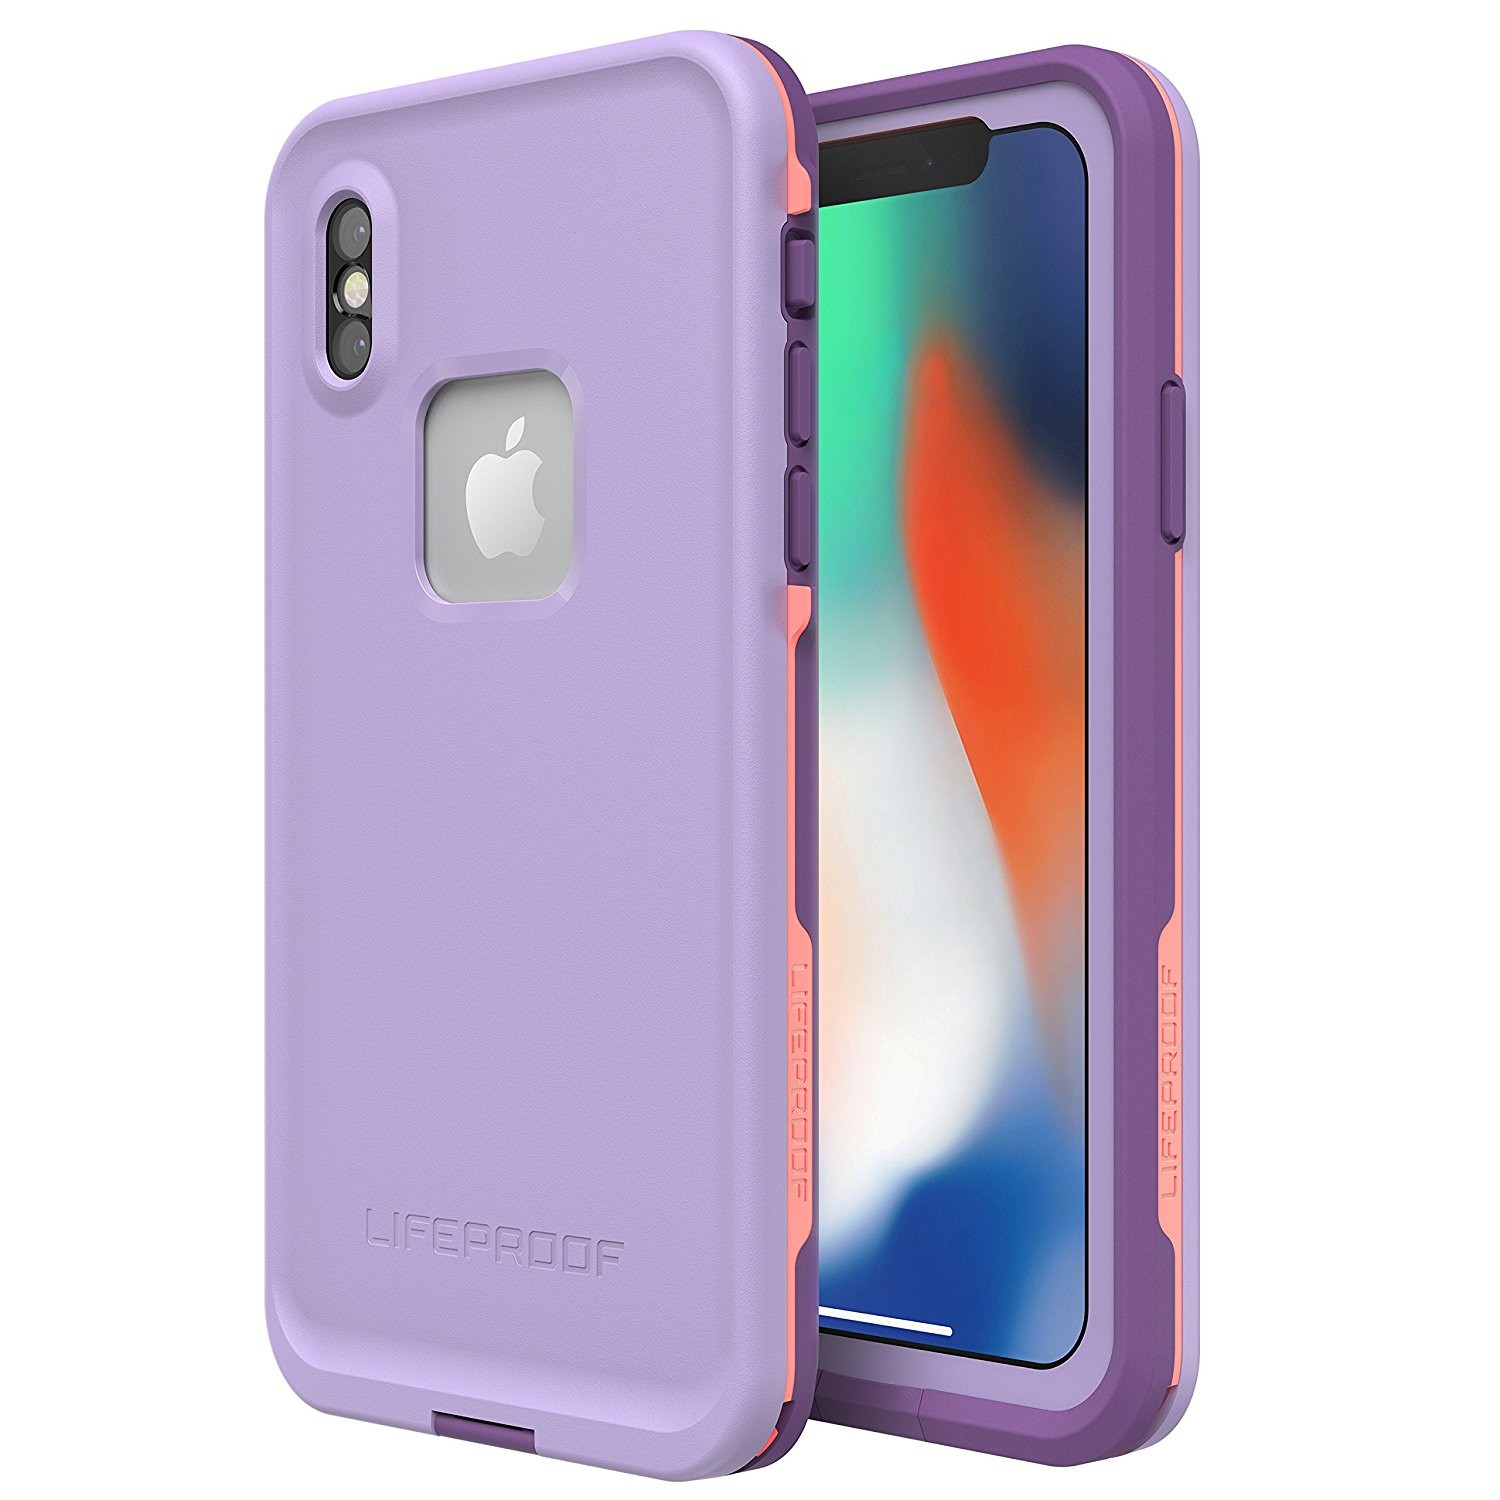 Lifeproof FRĒ SERIES Waterproof Case for iPhone X - Rose/Coral/Lilac, 77-57166